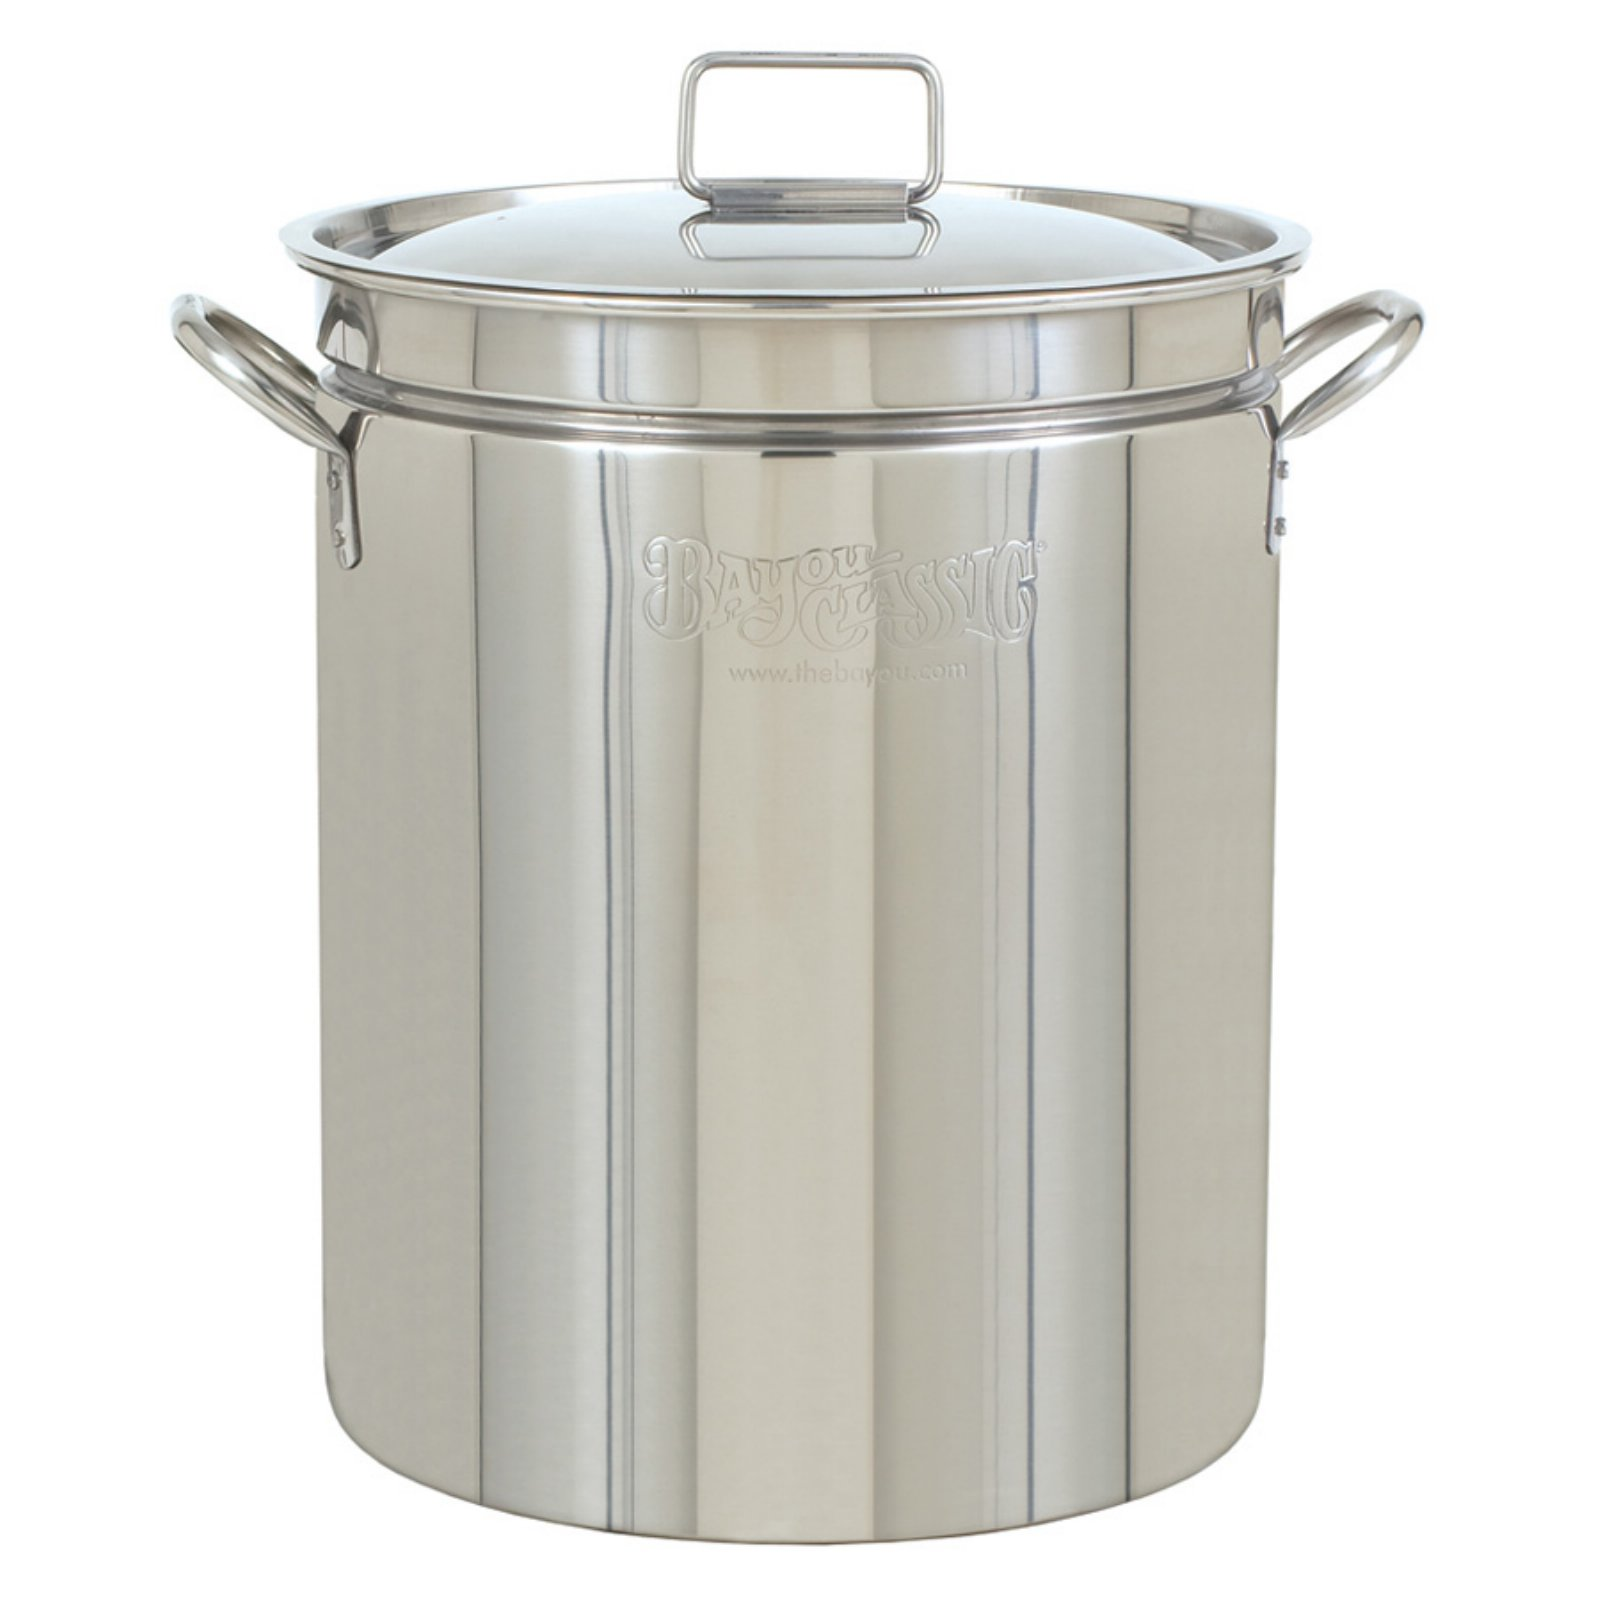 Bayou Classic Stainless Steel Stockpot with Lid